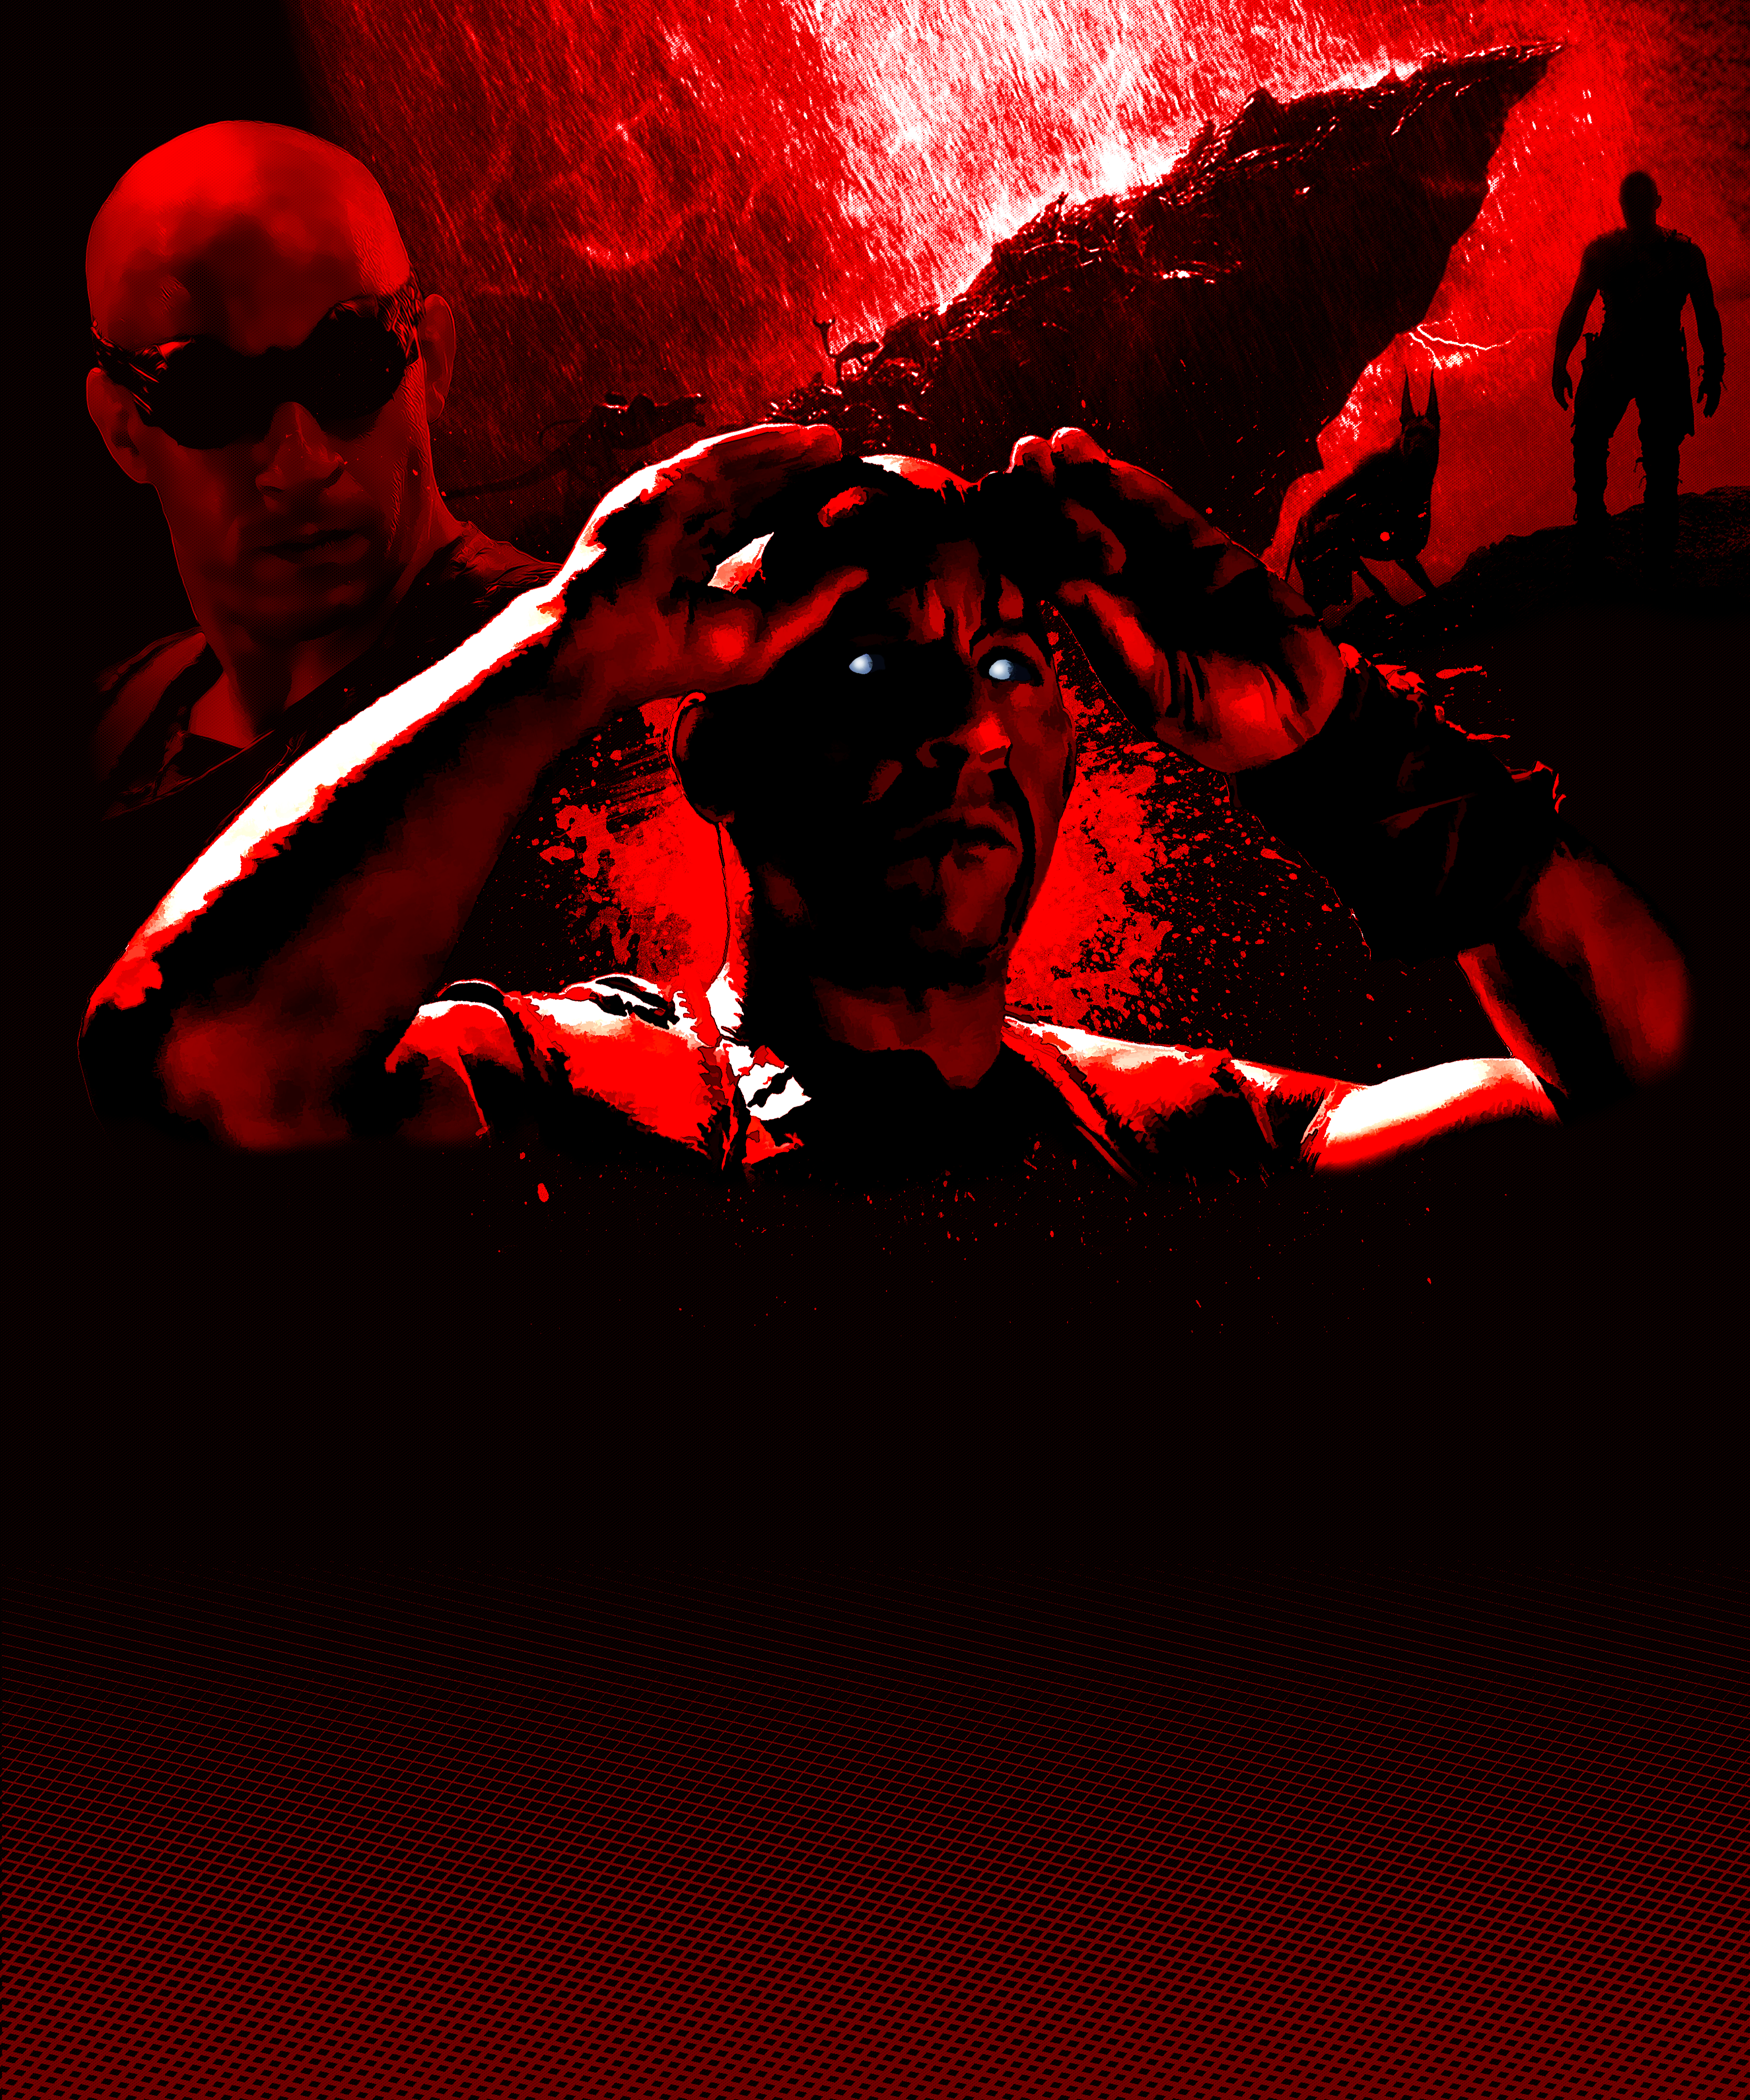 Rule the Dark - Blood Red - Poster by King-666 on DeviantArt